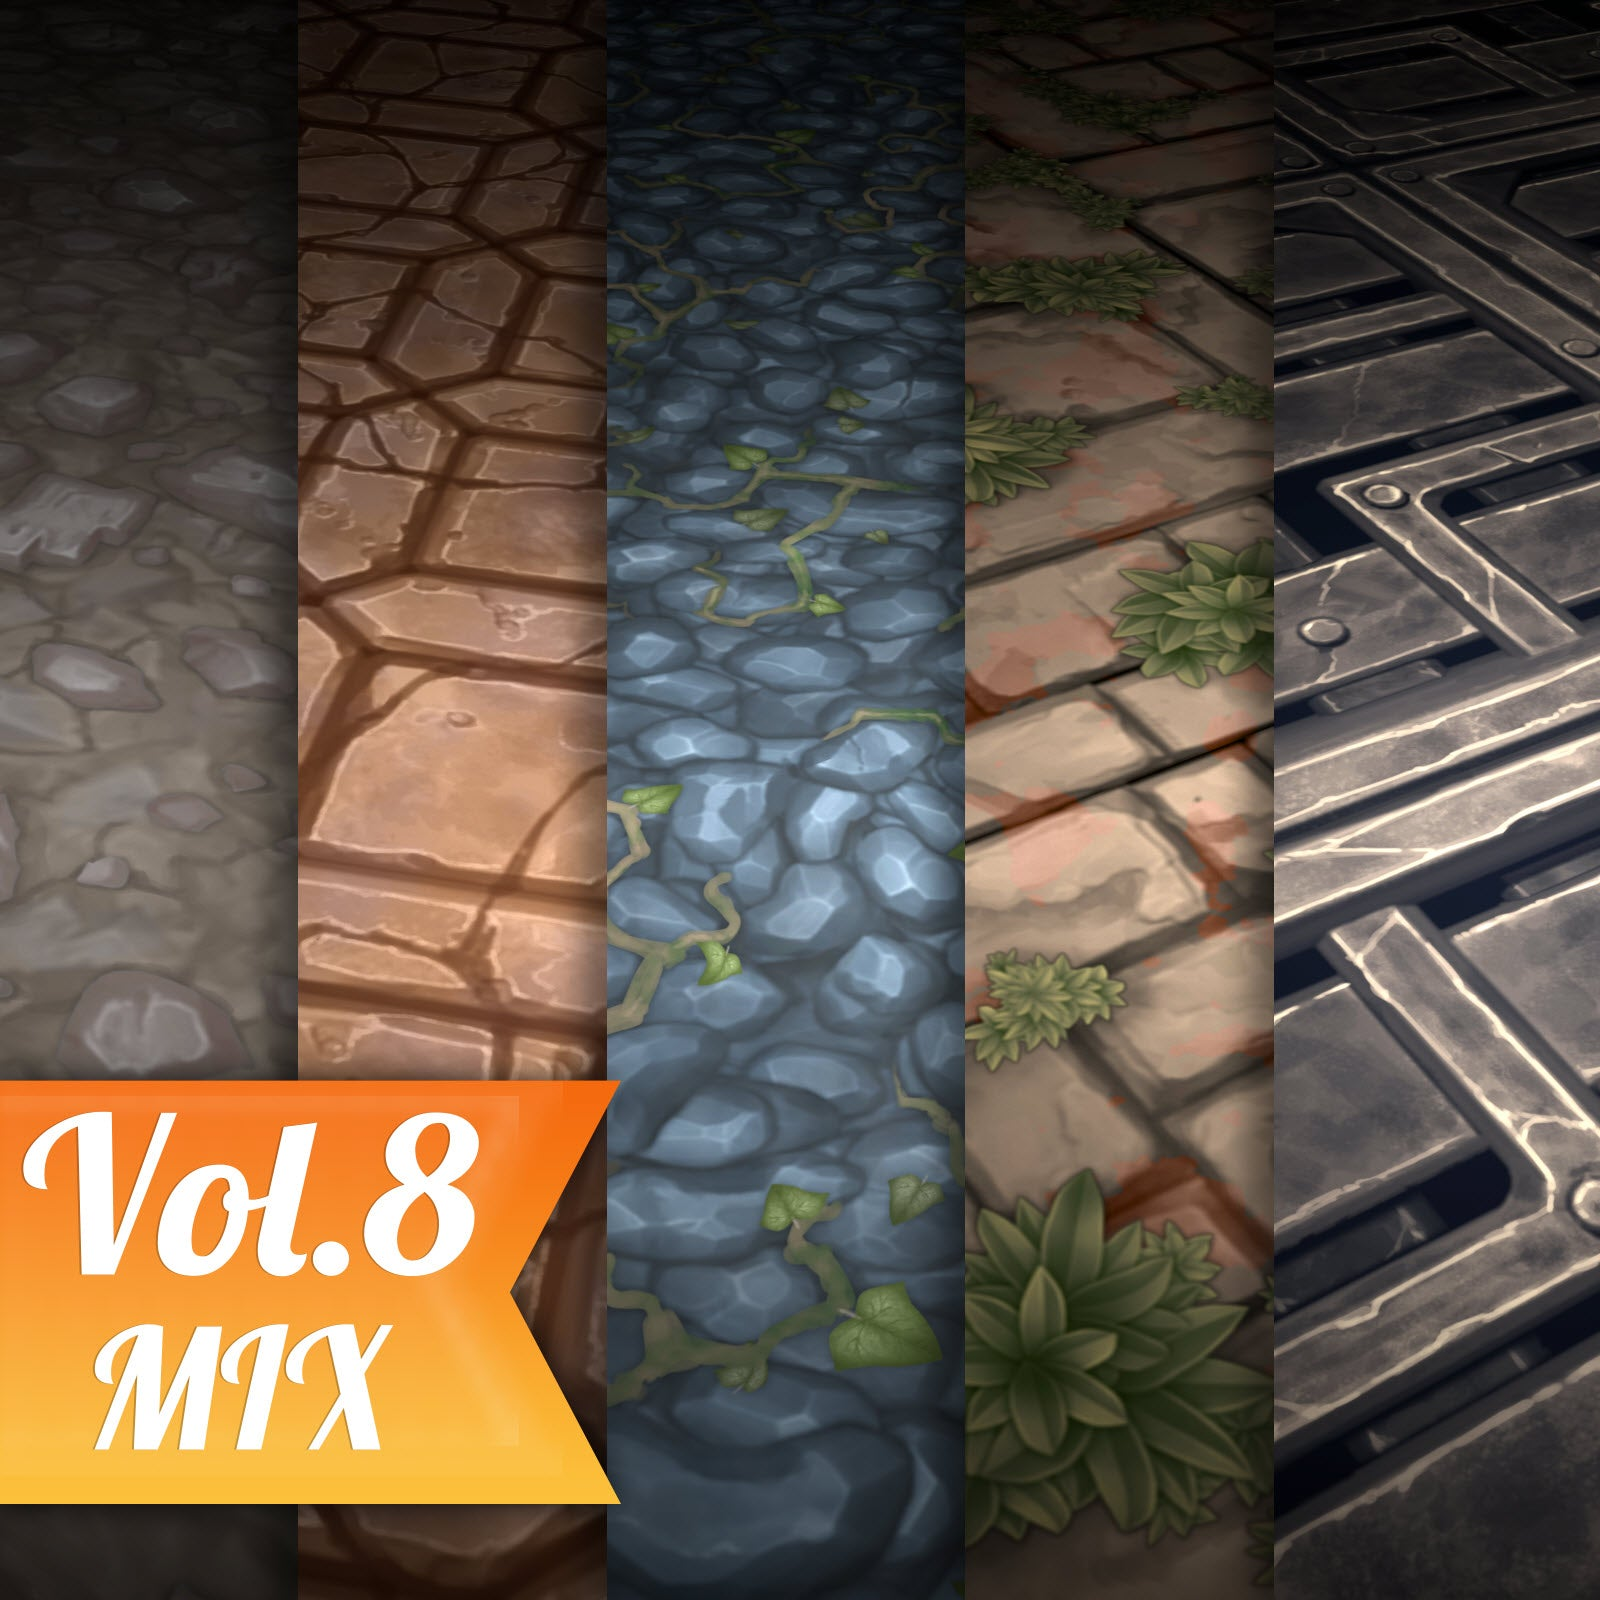 Lowlypoly: Low Poly 3D Game Models & Hand Painted Textures